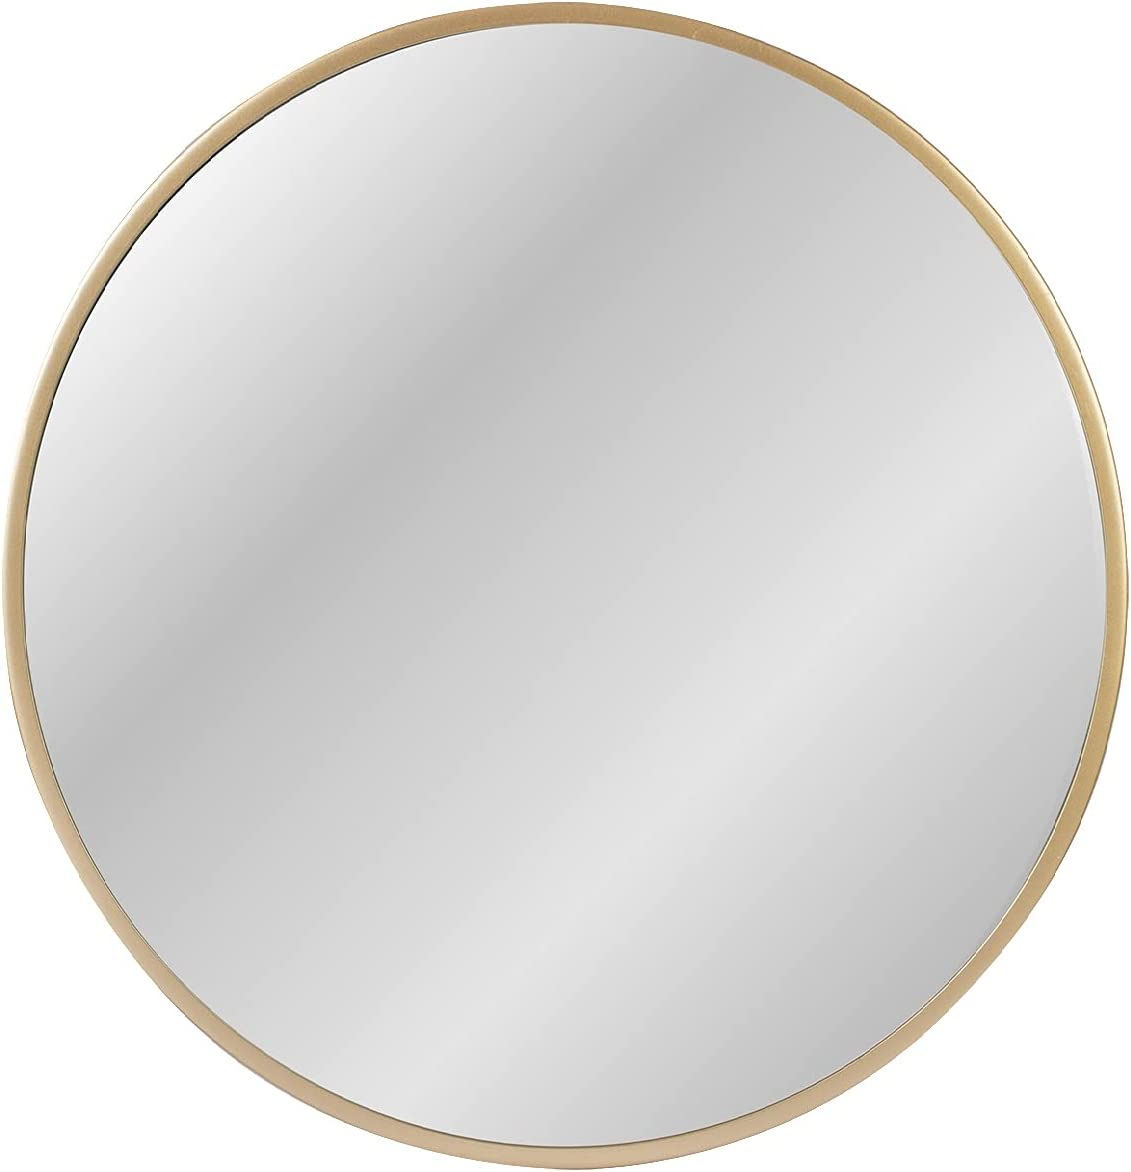 ZENMAG Round Wall Mirror,24-inch Large Circle Mirror,Gold Metal Framed Wall-Mounted Bathroom Mirror,Decorative Round Mirror for Bathroom Decor,Vanity Bedroom,Living Room,Entryway